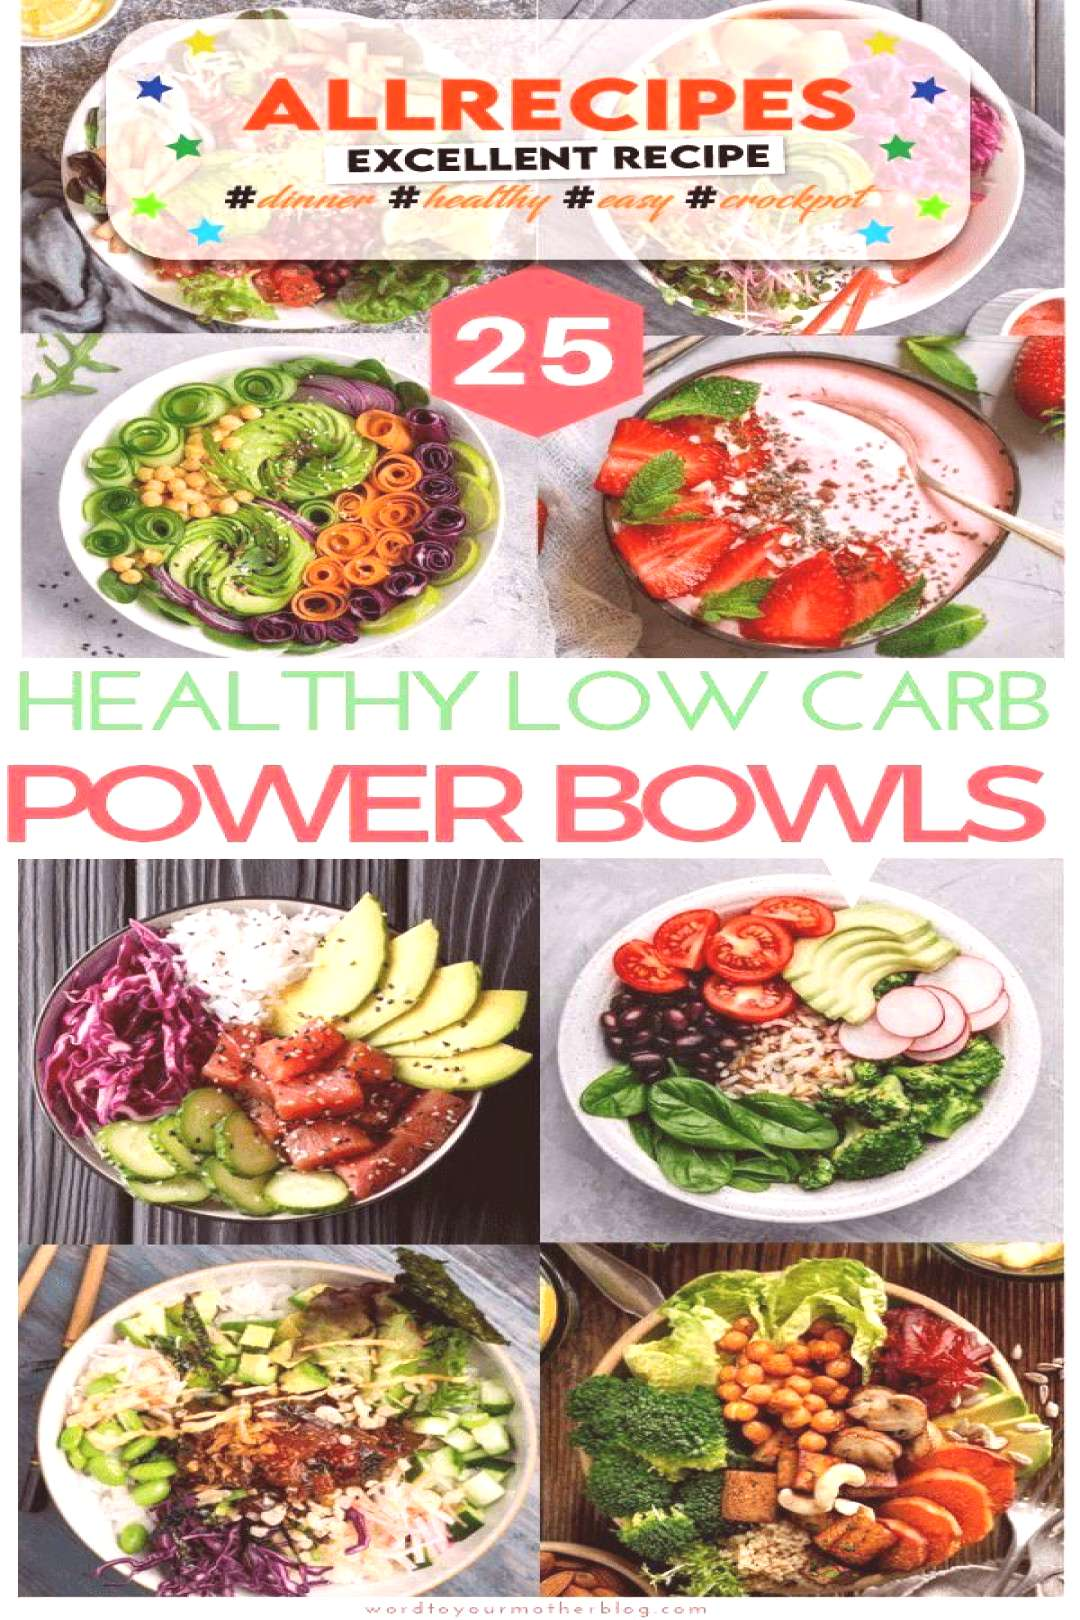 25 Insta-Worthy Low Carb Power Bowls To Add To Your Weekly Keto Meal Prep Line-Up - - 25 healthy po